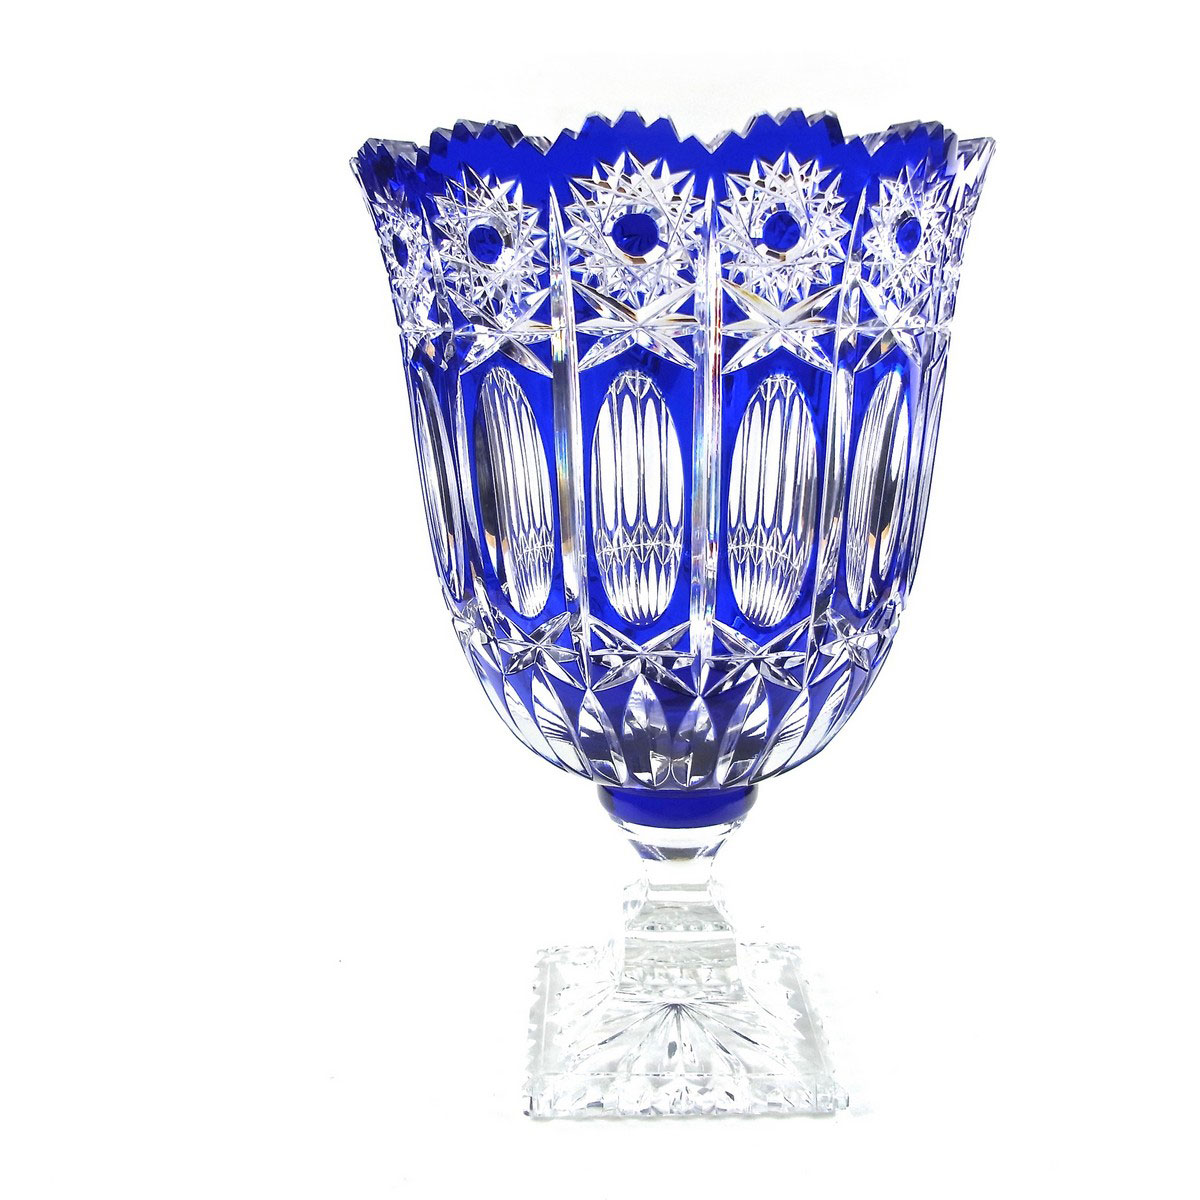 caesar modernism vase azure vases diamond decorative edge objects scalloped items glass crystal large cut blue